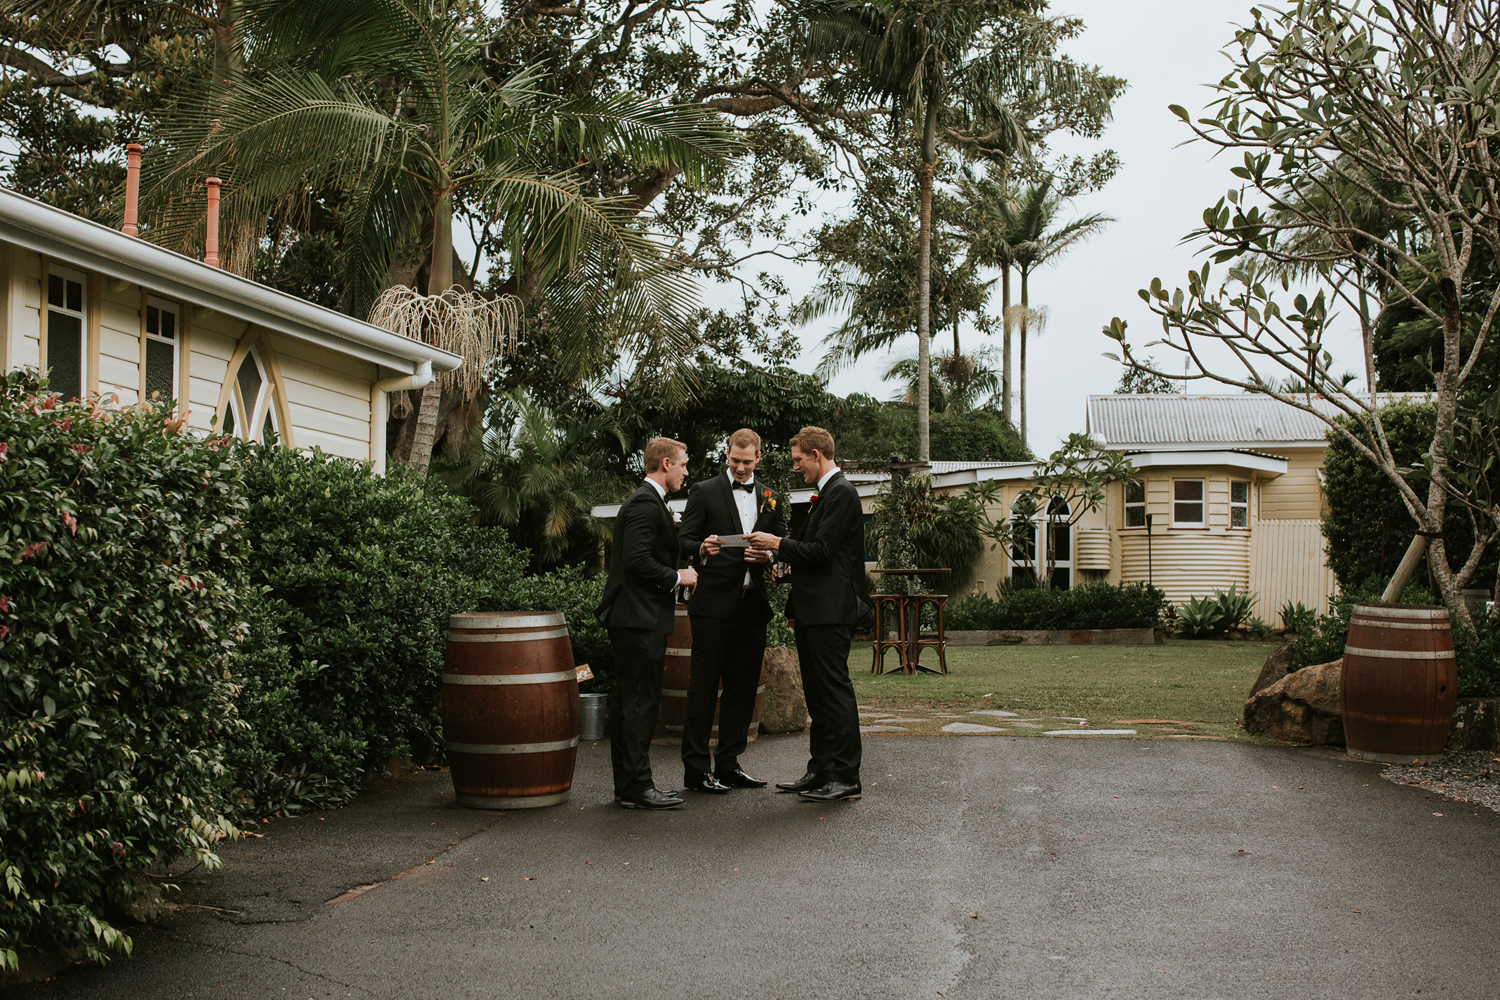 472-byron_bay_wedding_photographer.jpg